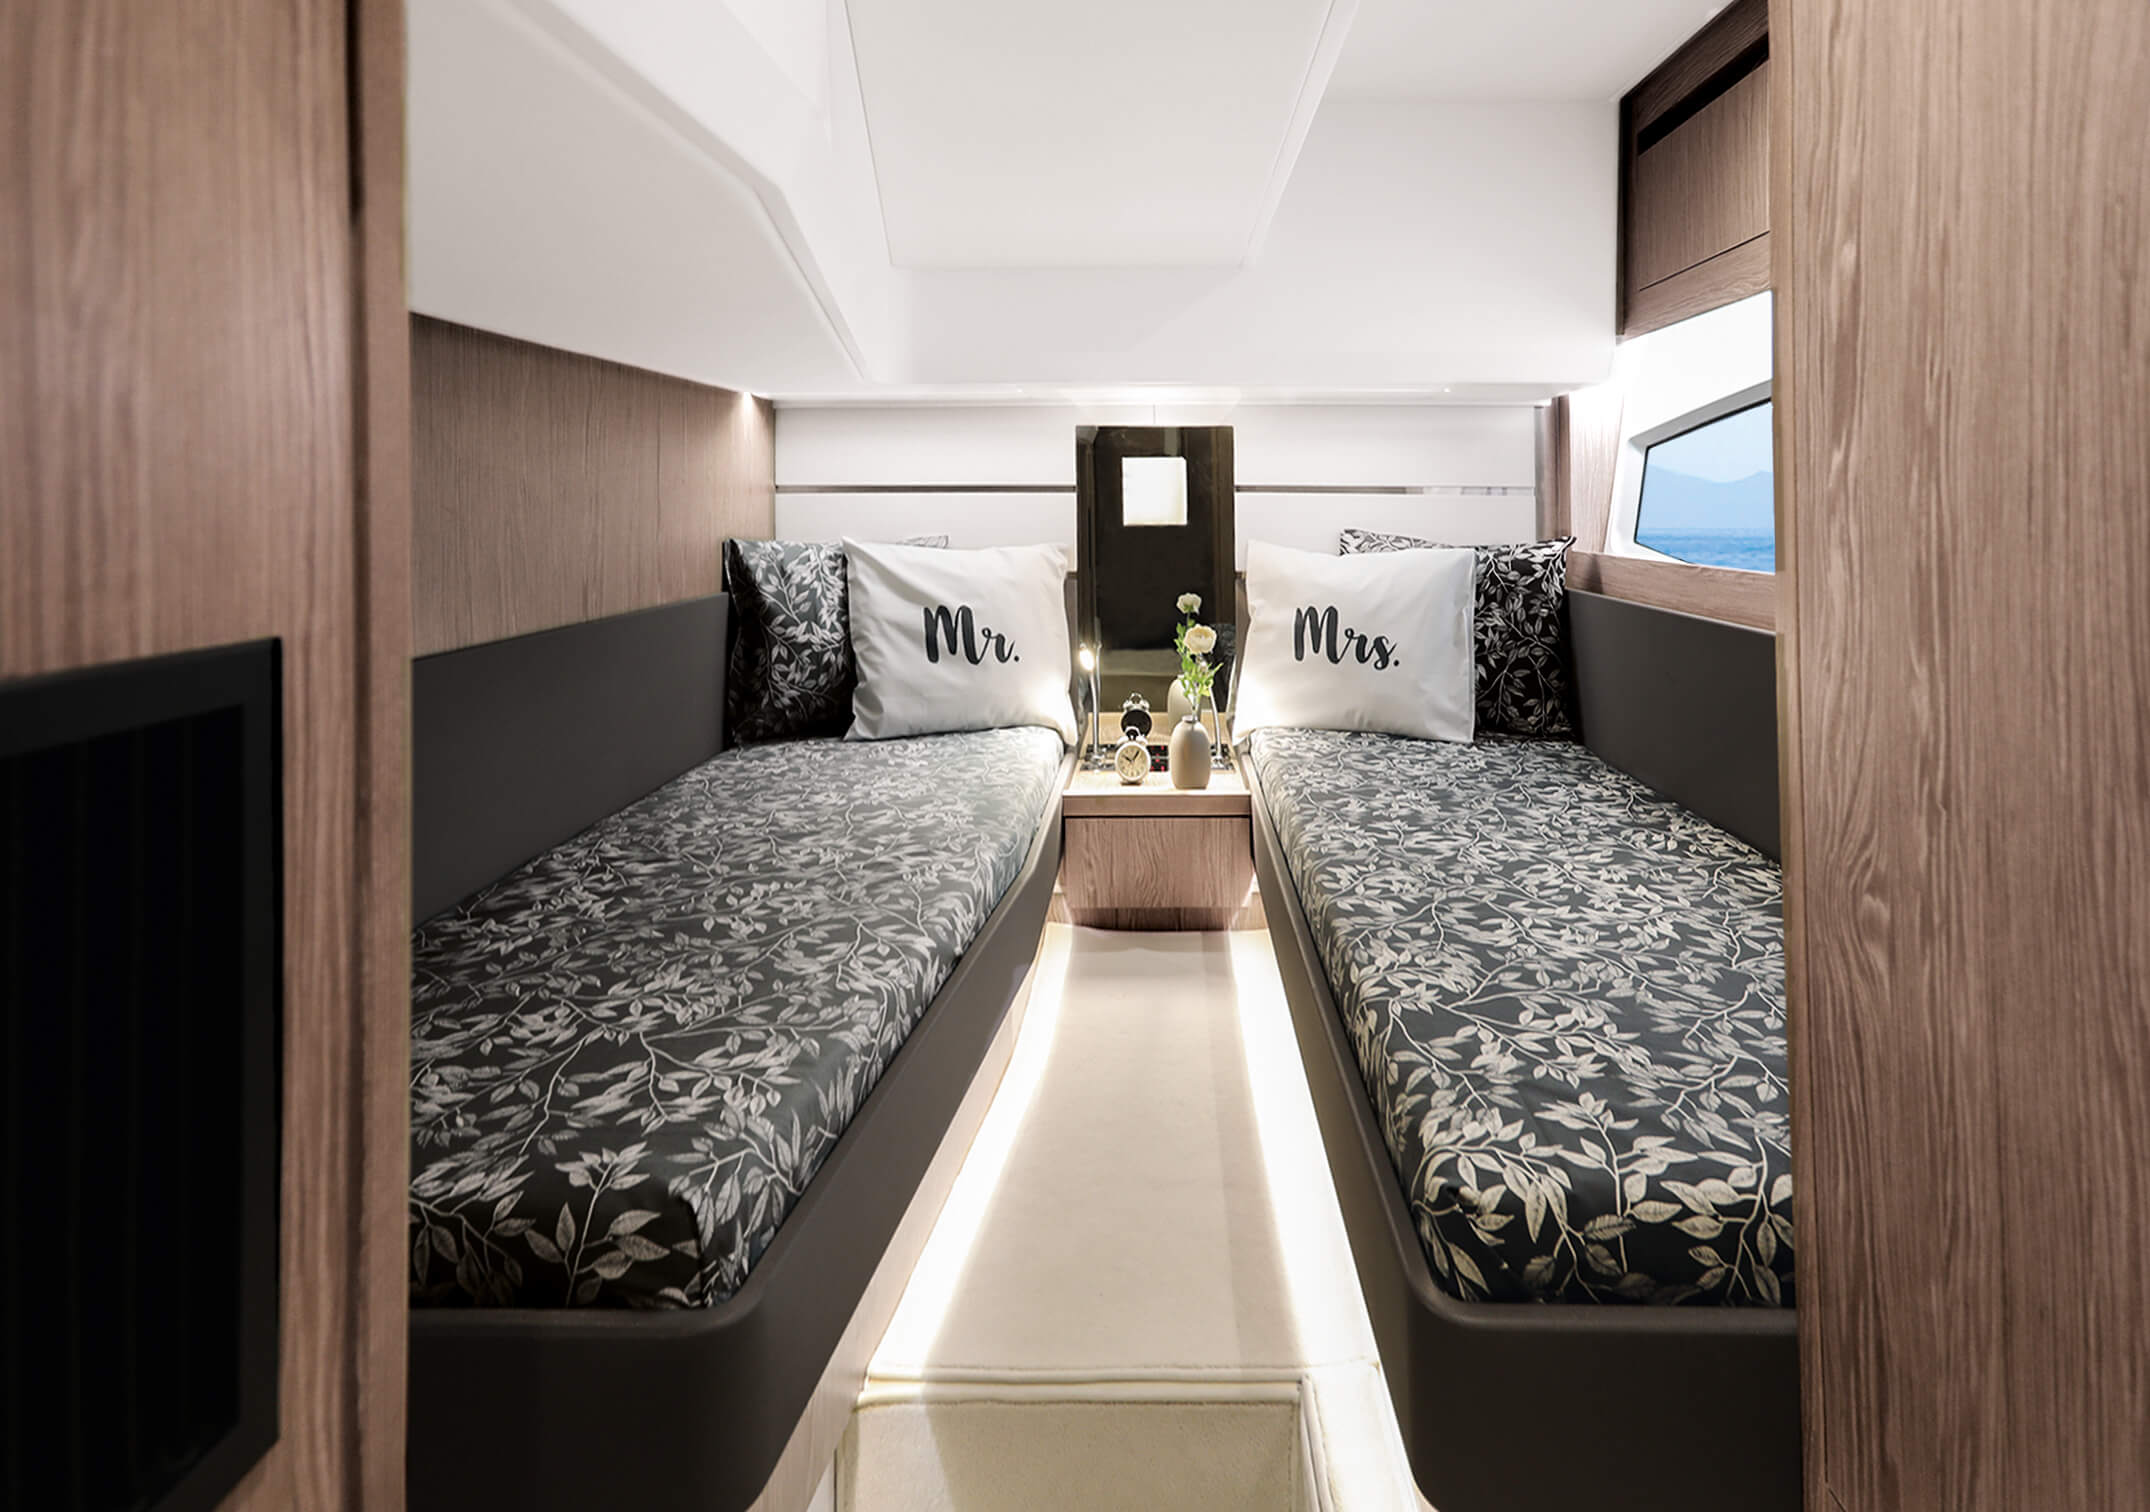 Sealine F430 Interno vista | Portside cabin with twin berth, wardrobe, bedside tables and direct access to heads. | Sealine